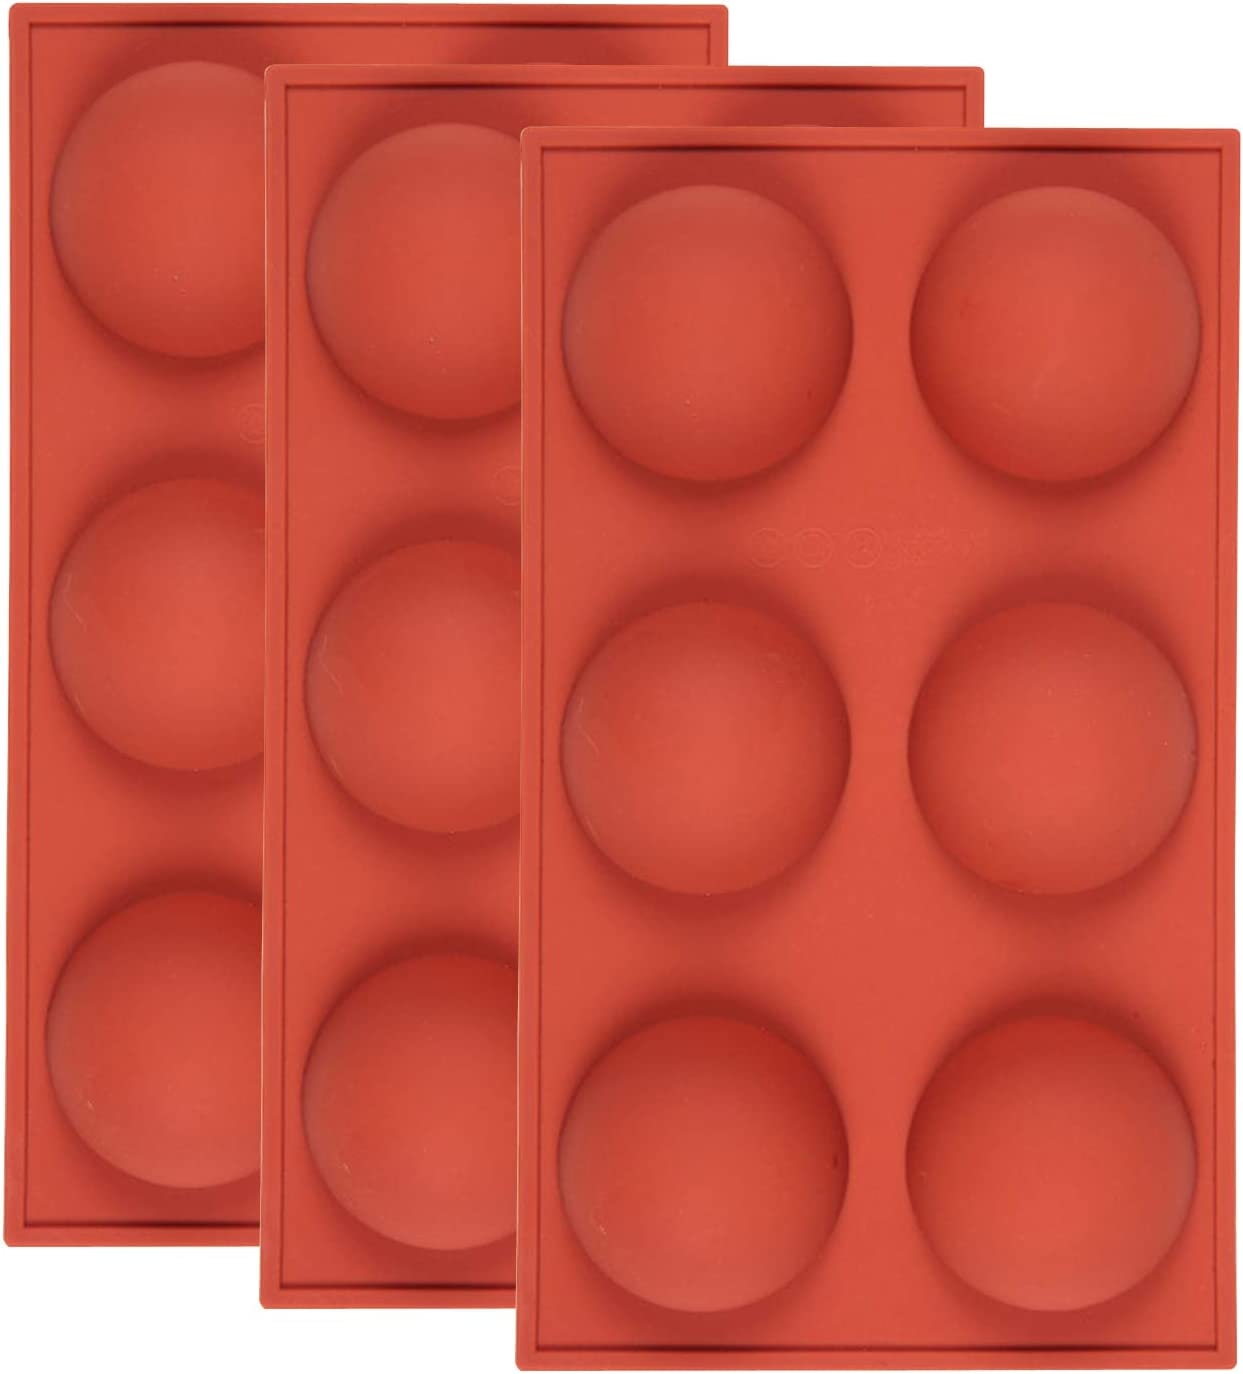 Large 6-Cavity Semi Sphere Silicone Mold, 6 Holes Silicone Mold For Chocolate, Cake, Jelly, Pudding, Handmade Soap, BPA Free Cupcake Baking Pan (3pcs)